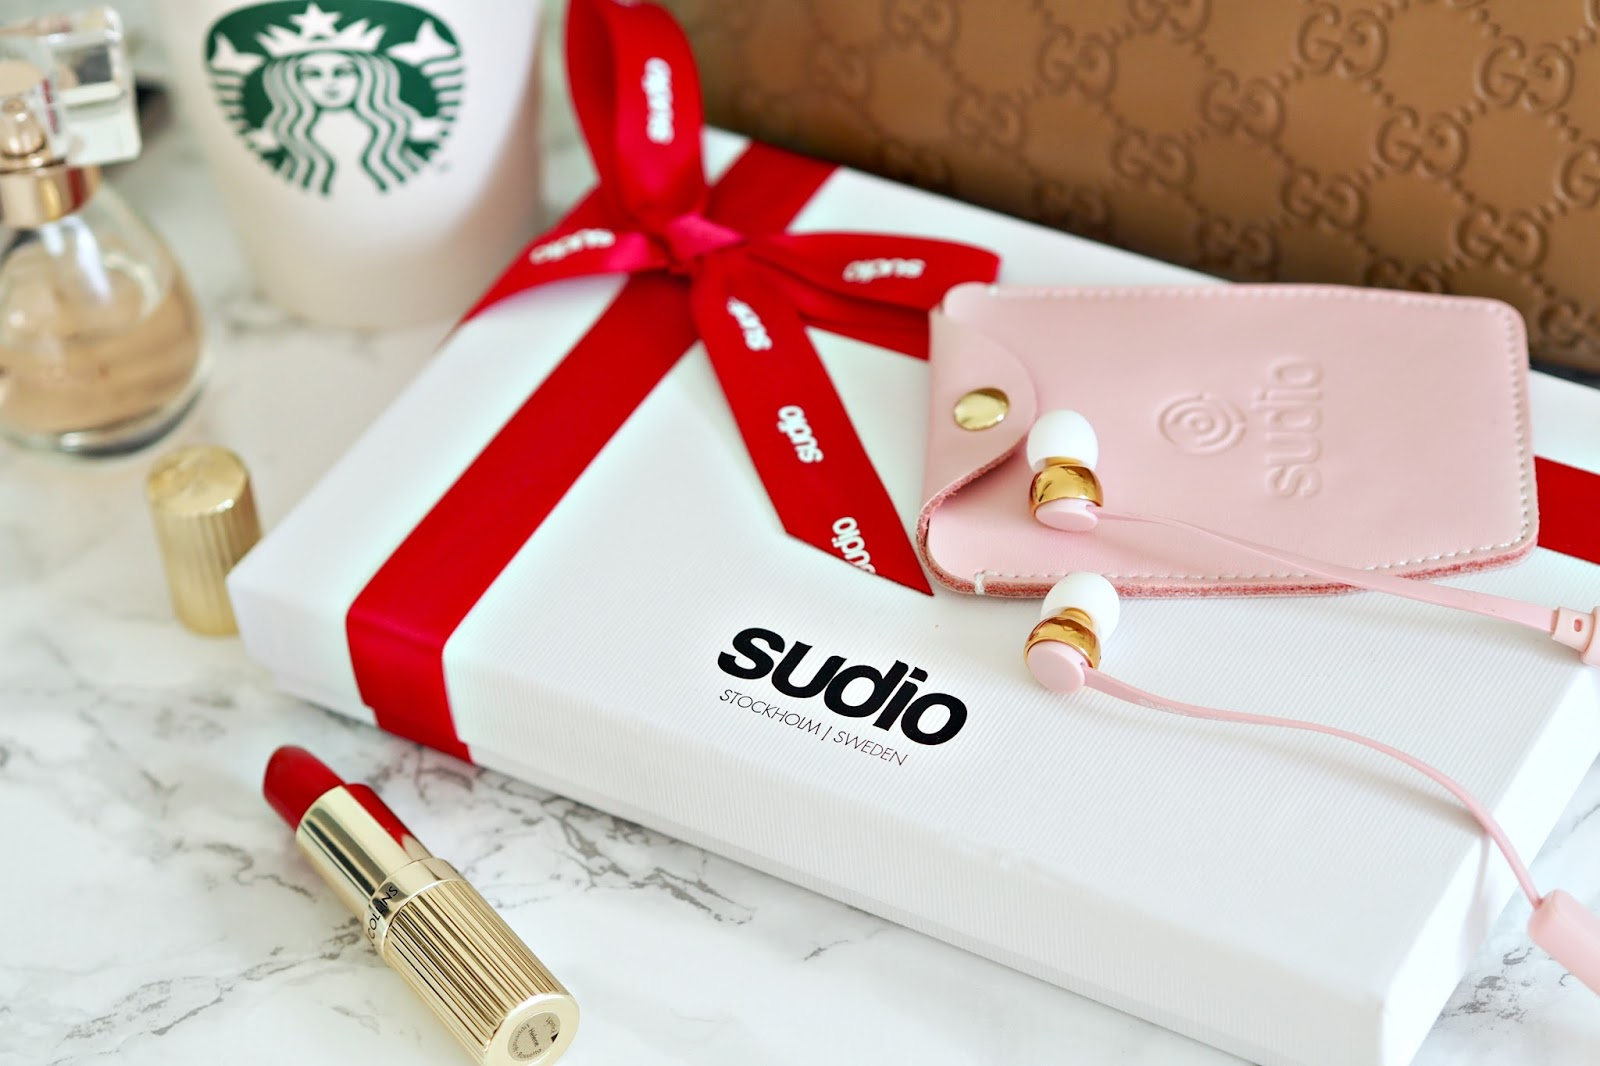 Sudio wireless headphones in pink, perfect for commuting